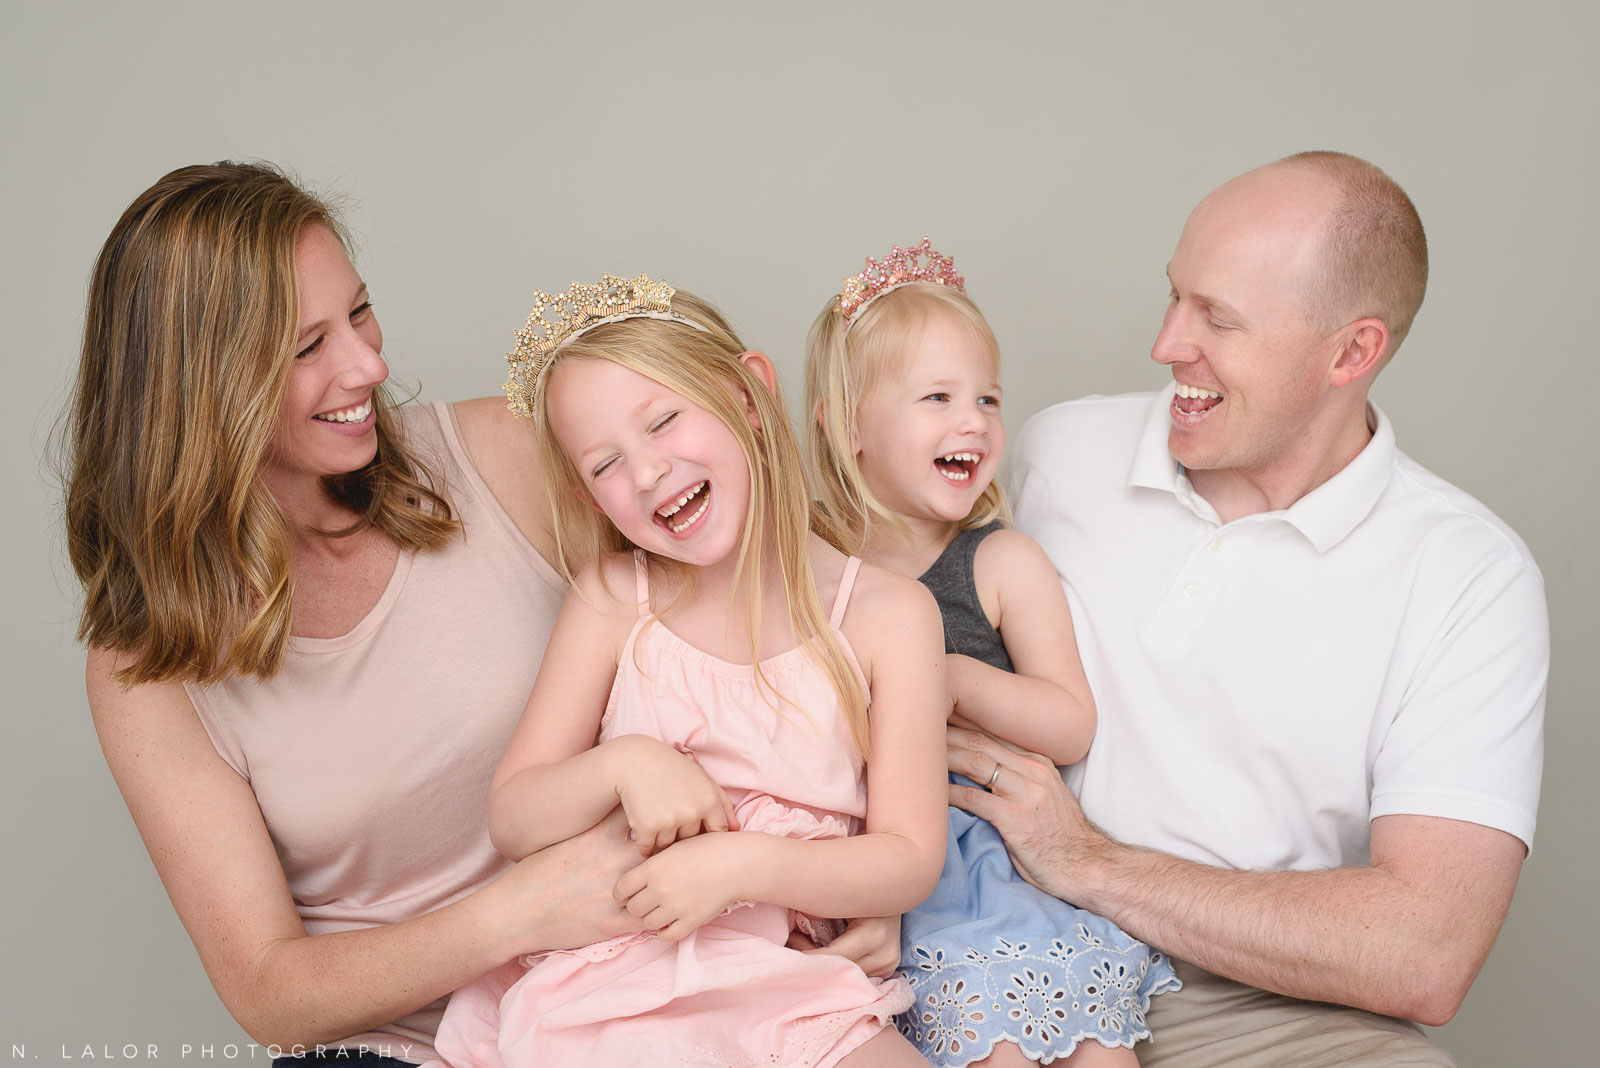 Candid family portrait. Family photo session with N. Lalor Photography. Greenwich, Connecticut studio photographer.